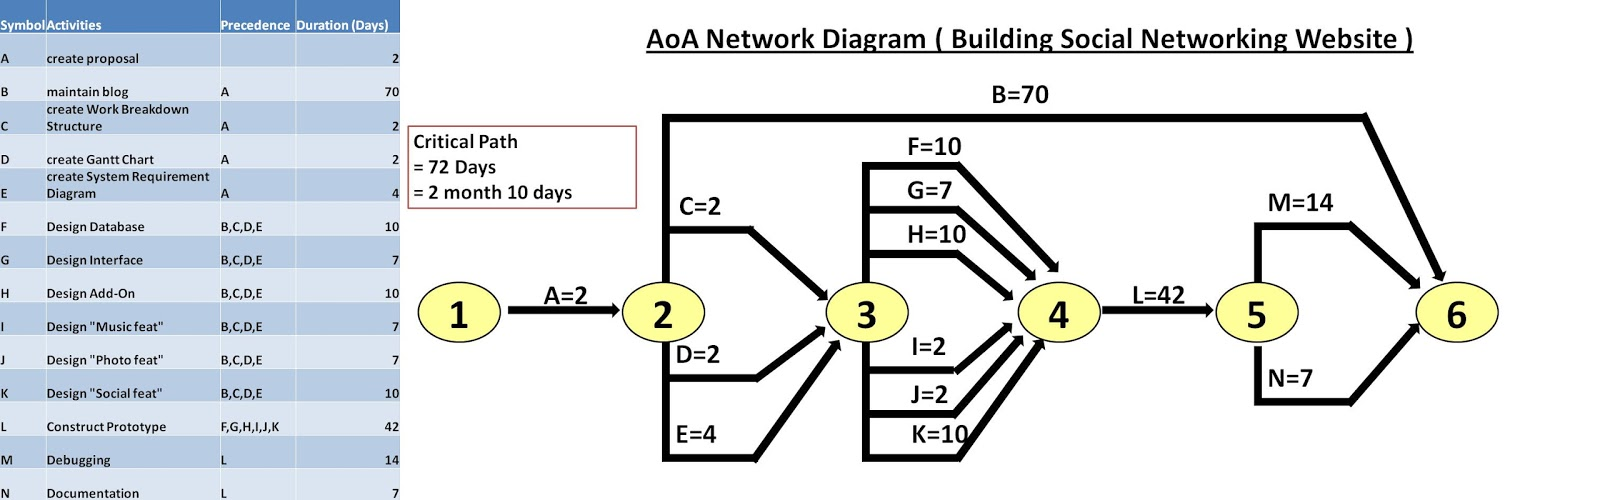 small resolution of aoa network diagram building social networking website ver 1